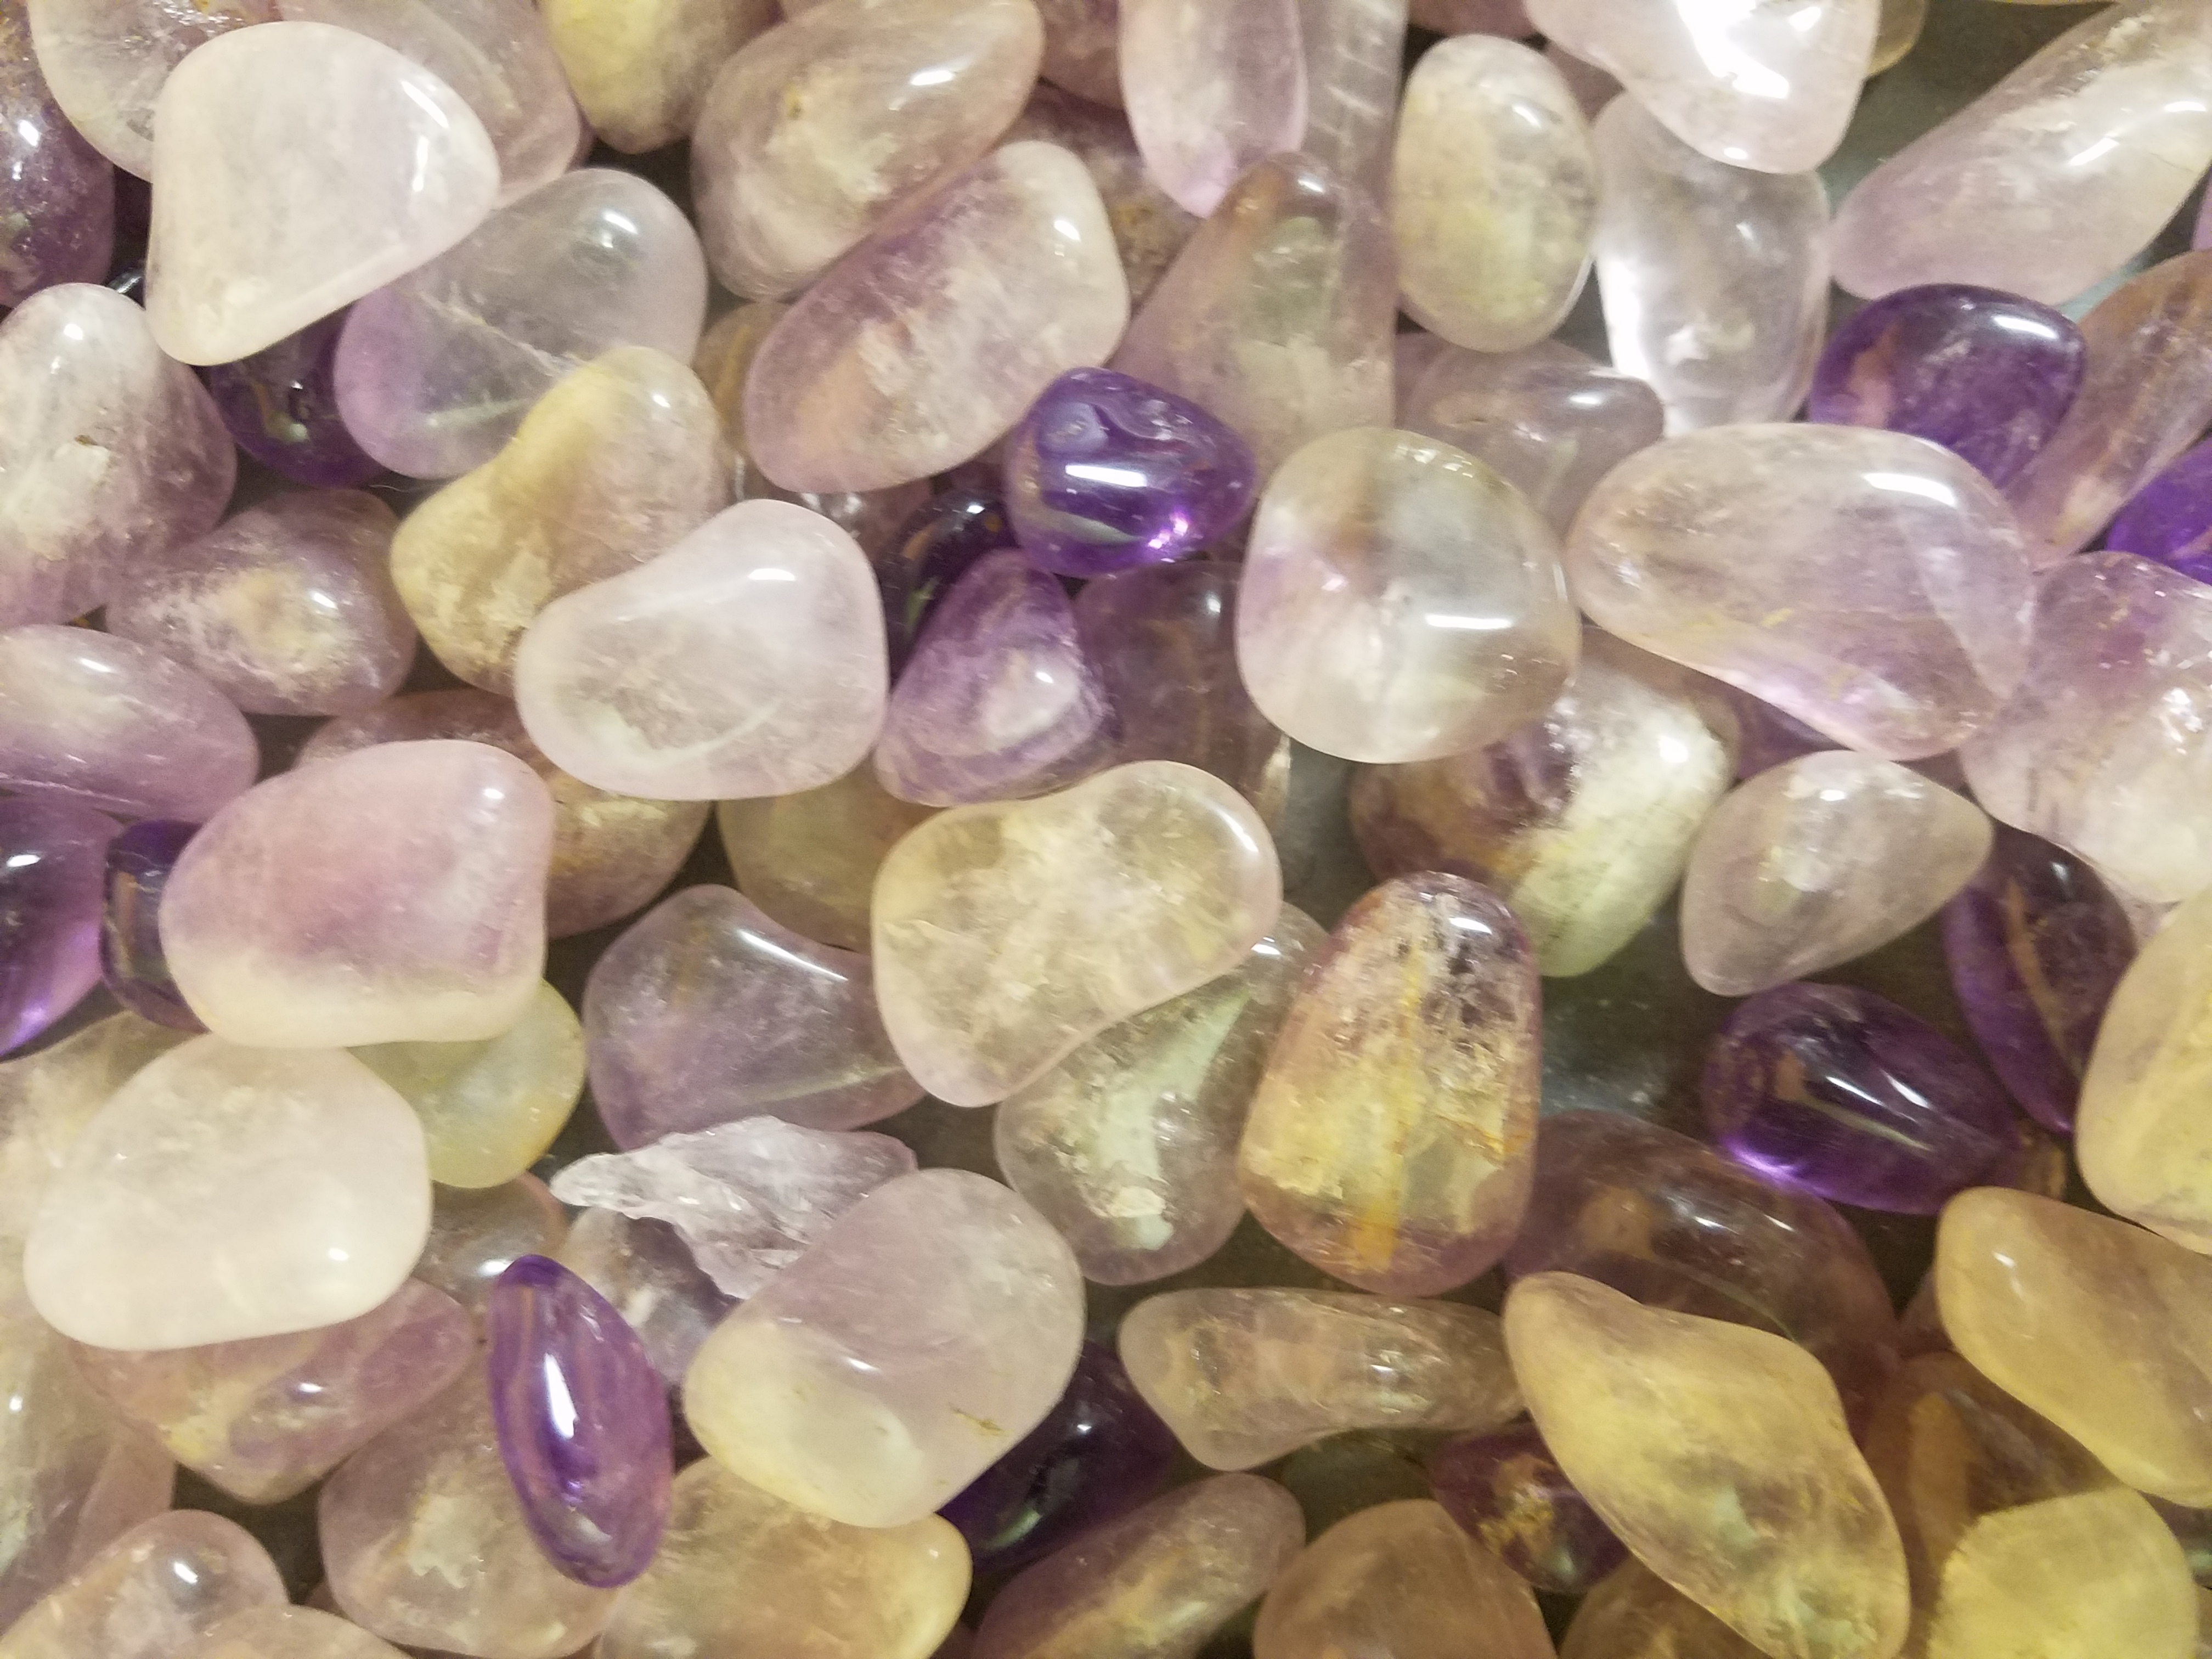 purple-clear-polished-stones-919.jpg